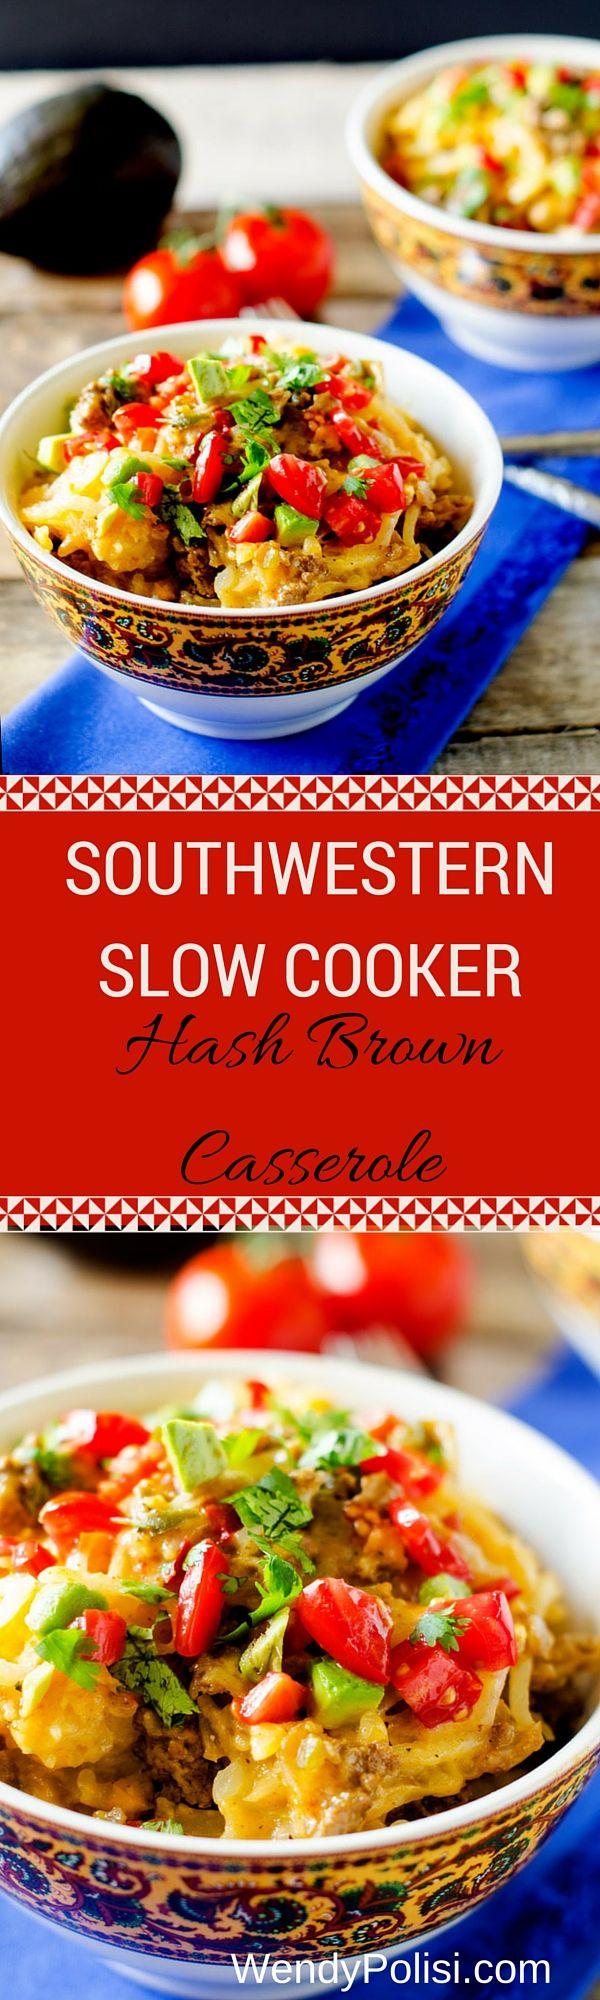 Southwestern Slow Cooker Hash Brown Casserole #simplypotatoes #sponsored